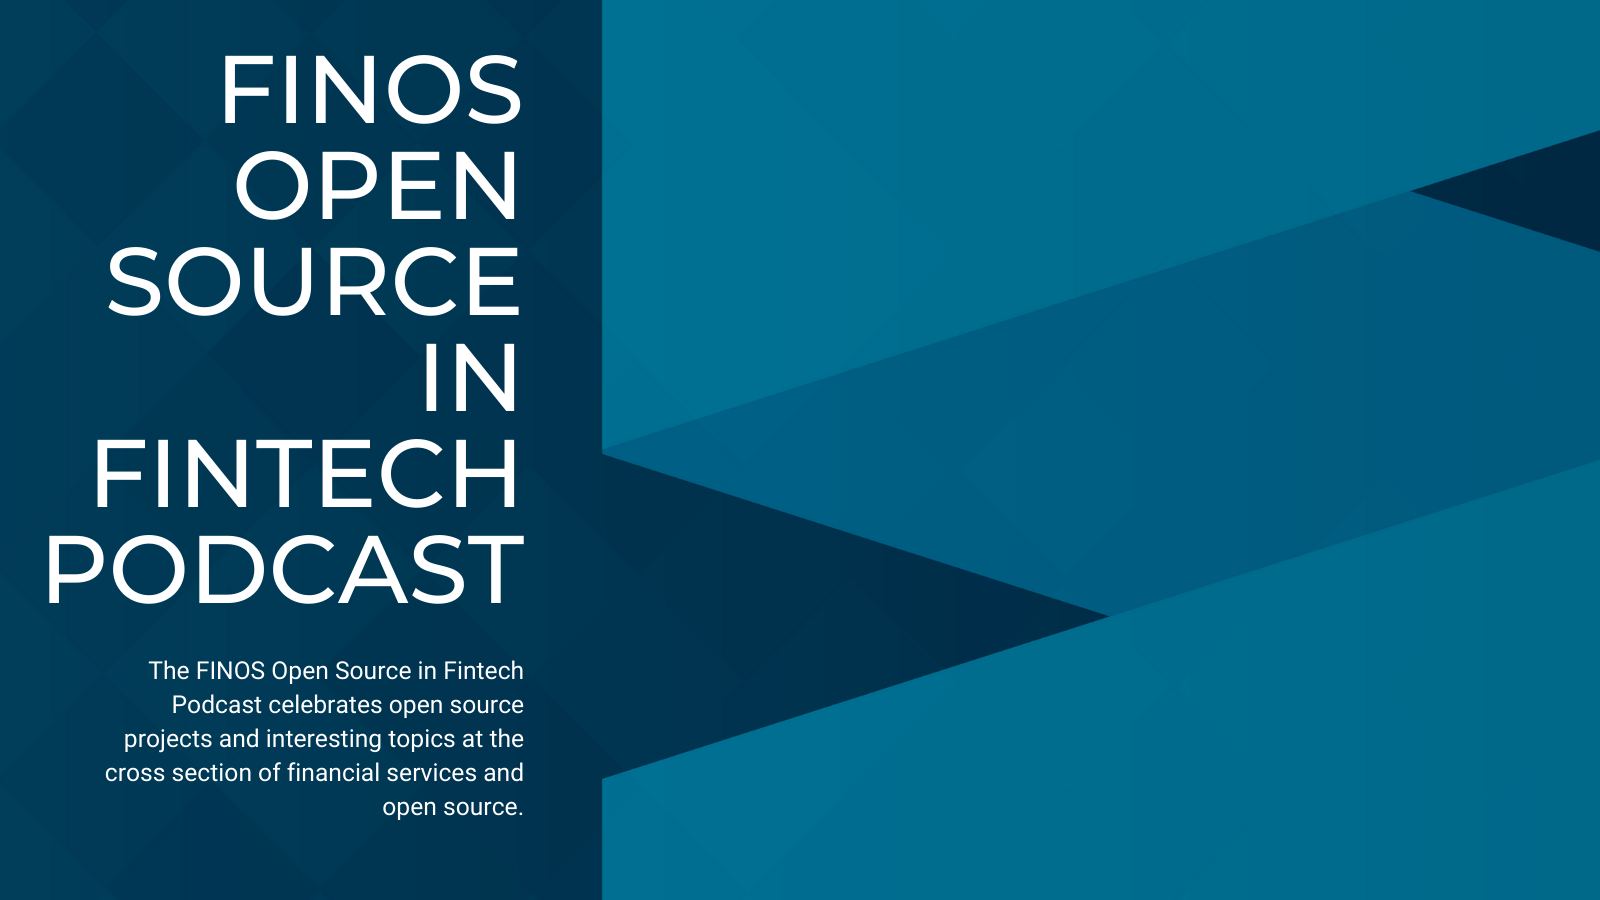 FINOS OPEN SOURCE IN FINTECH PODCAST